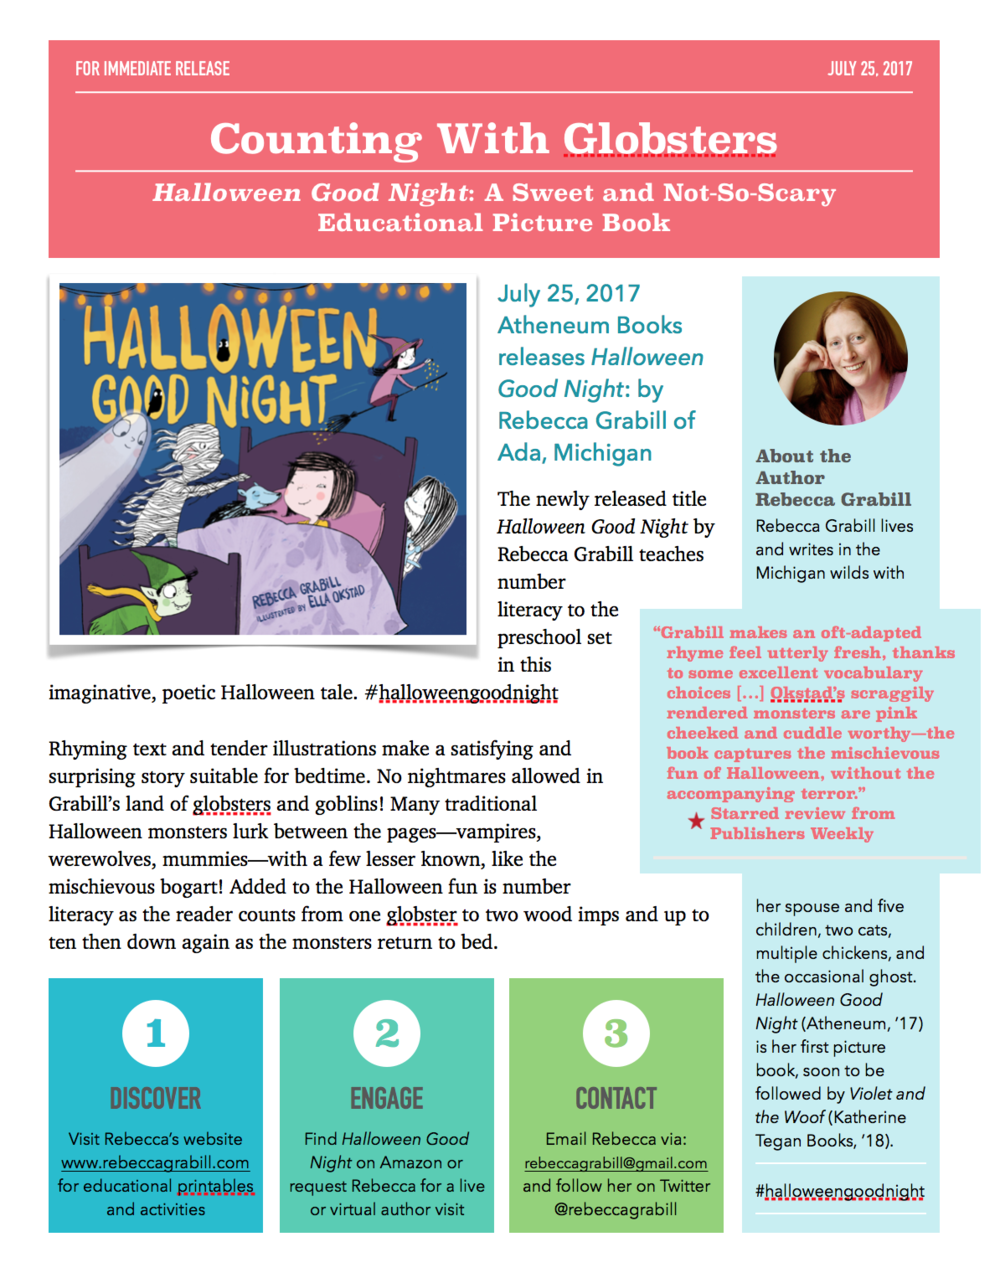 Halloween Good Night By Rebecca Grabill Press Release